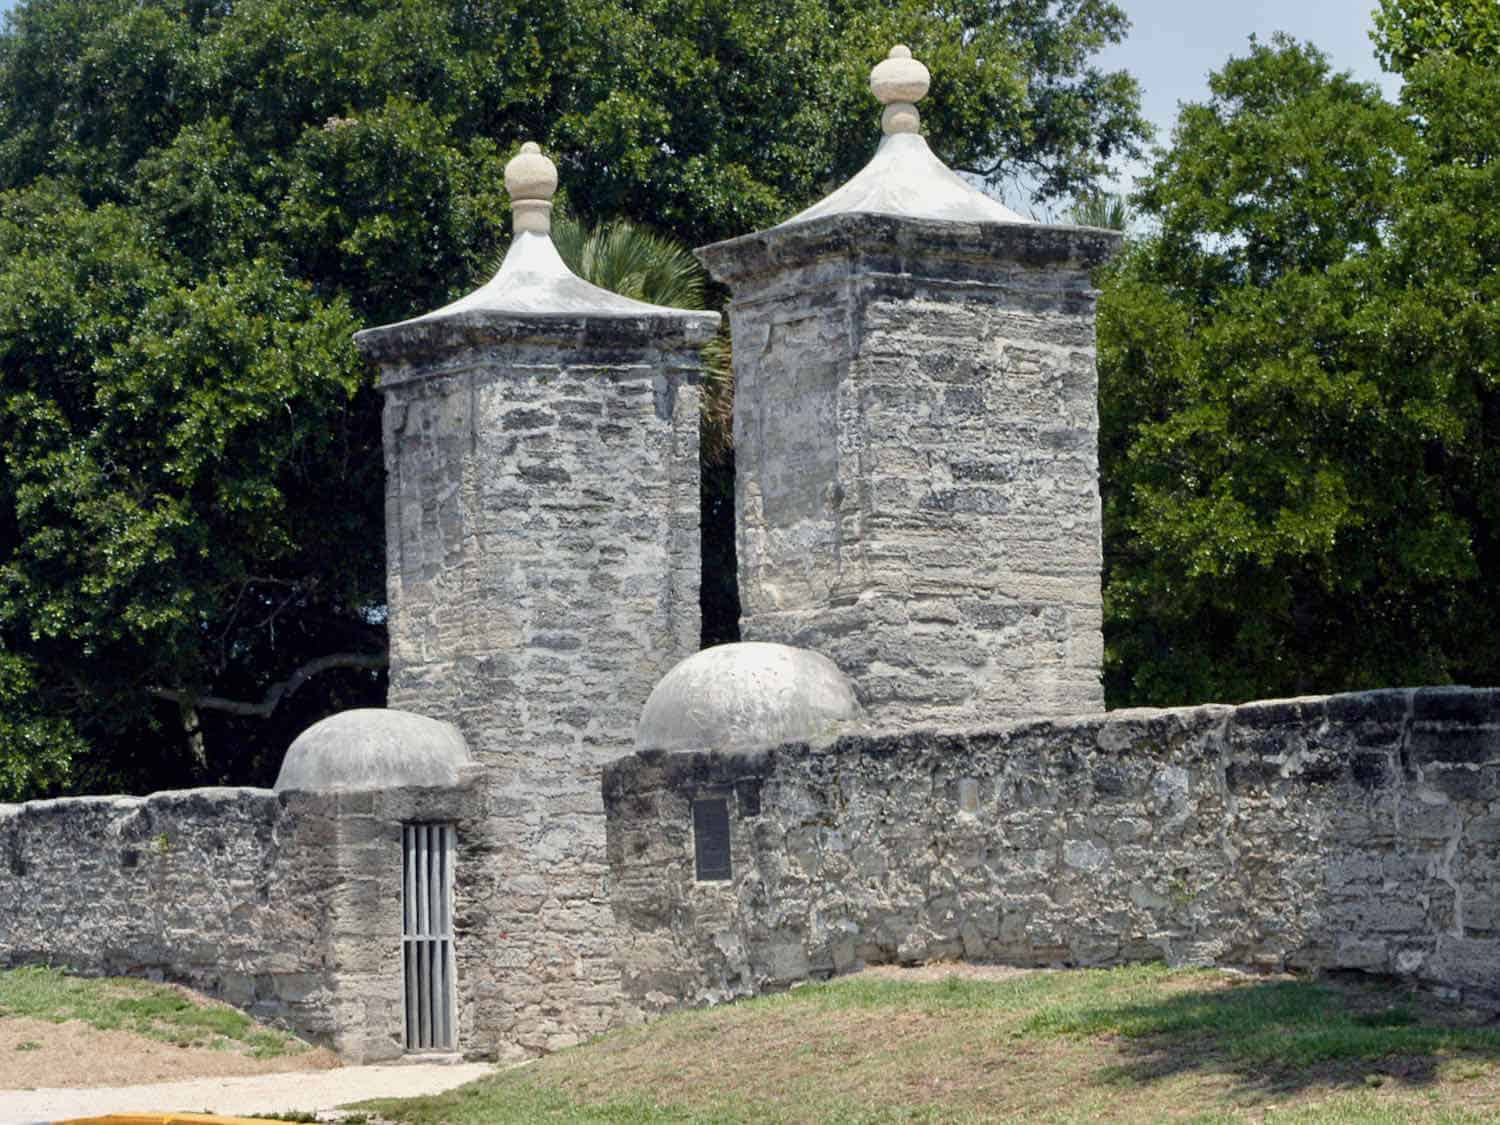 Gray wall and towers made of seashells in St Augustine, Florida